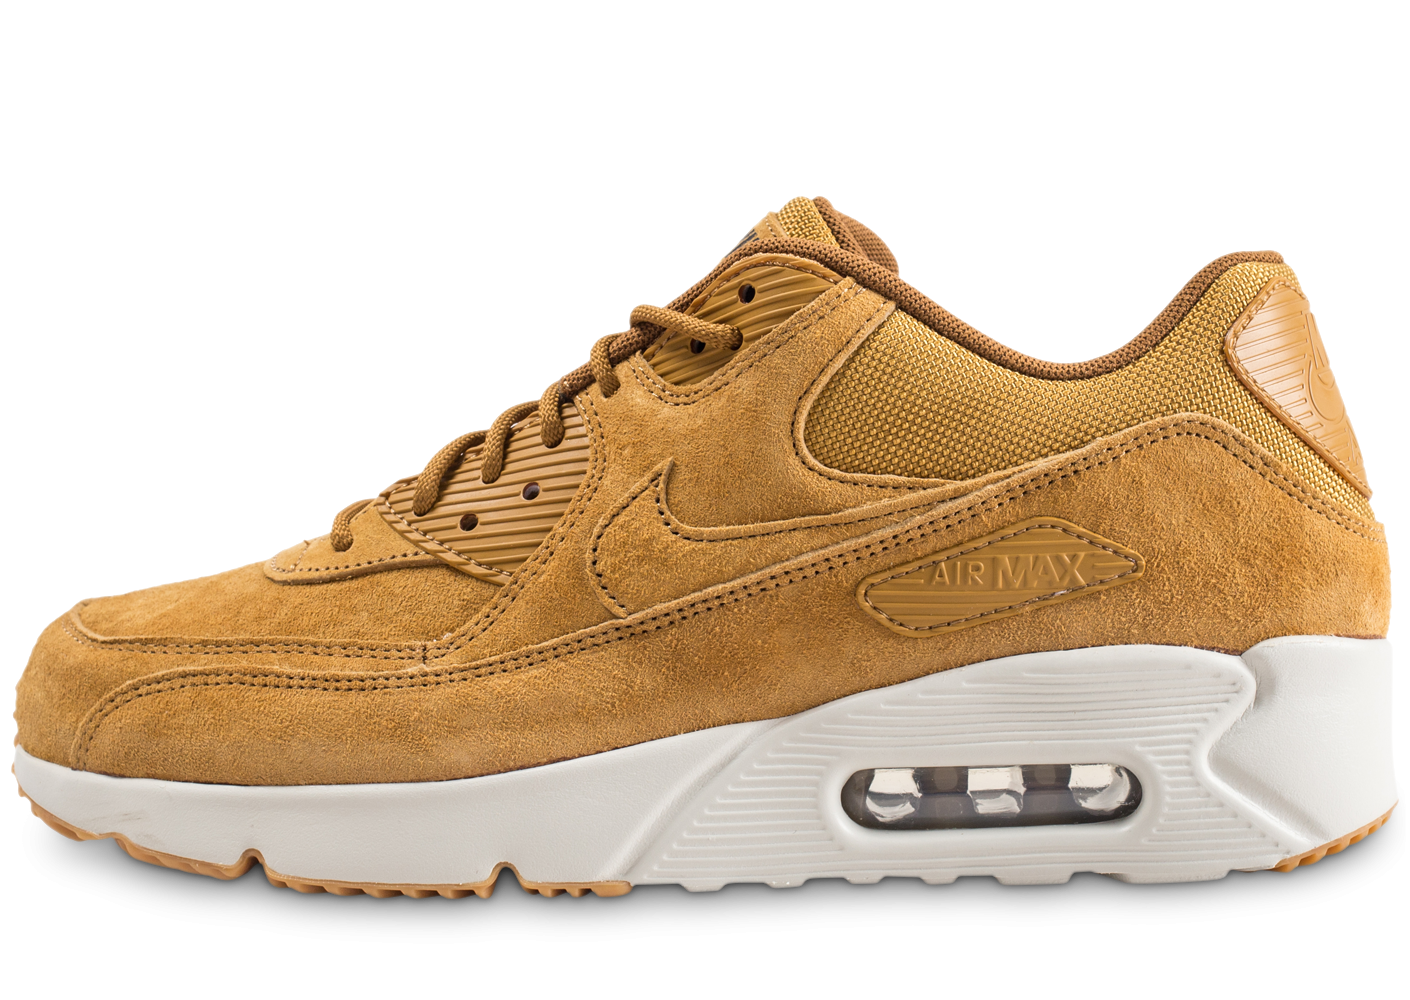 new concept c3cb6 3d712 Nike Air Max 90 Ultra 2.0 LTR wheat - Chaussures Baskets homme - Chausport